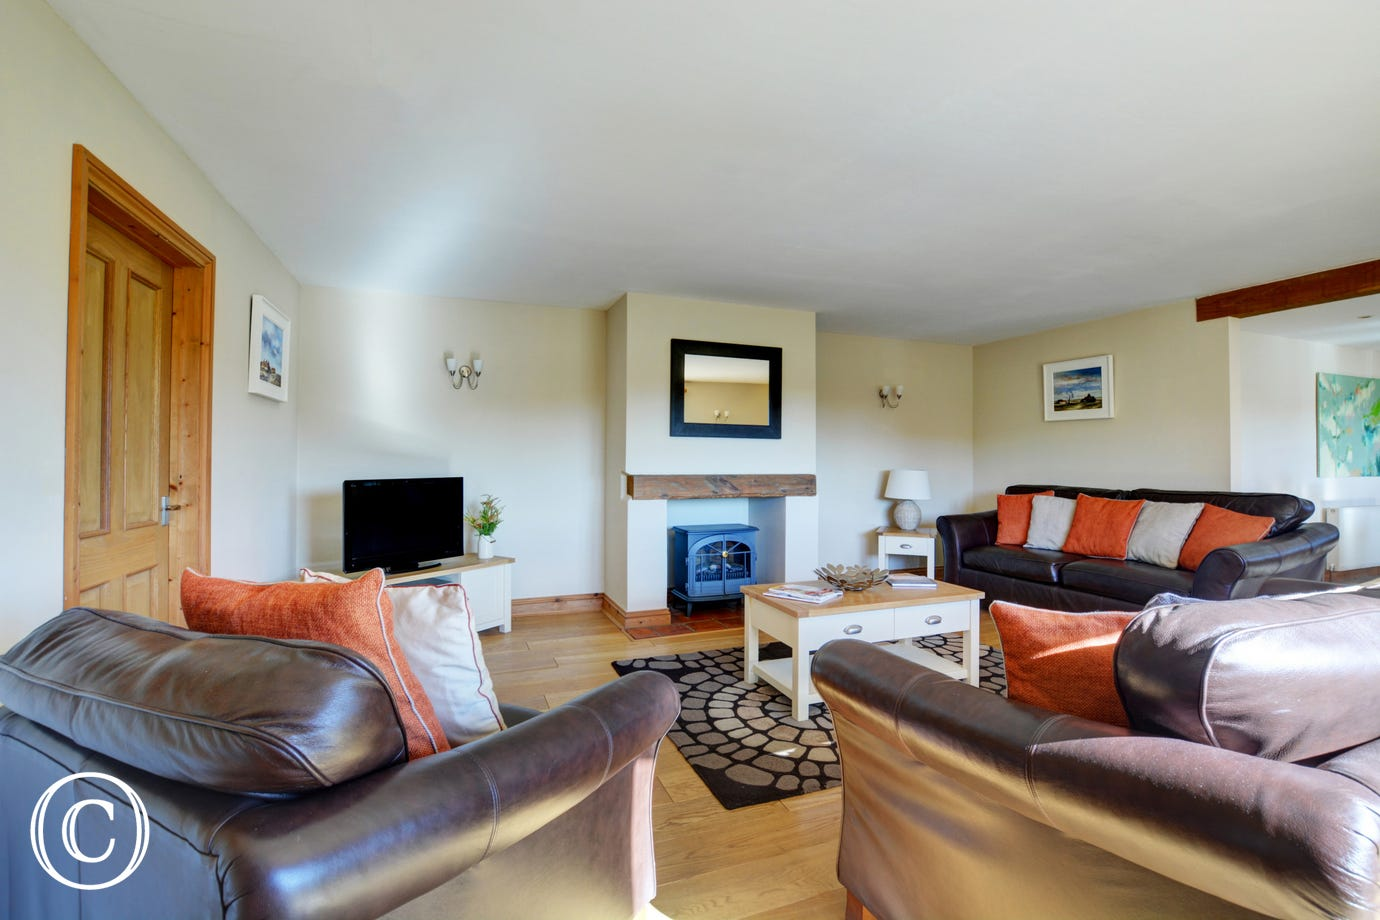 Lovely spacious sitting room with comfy seating